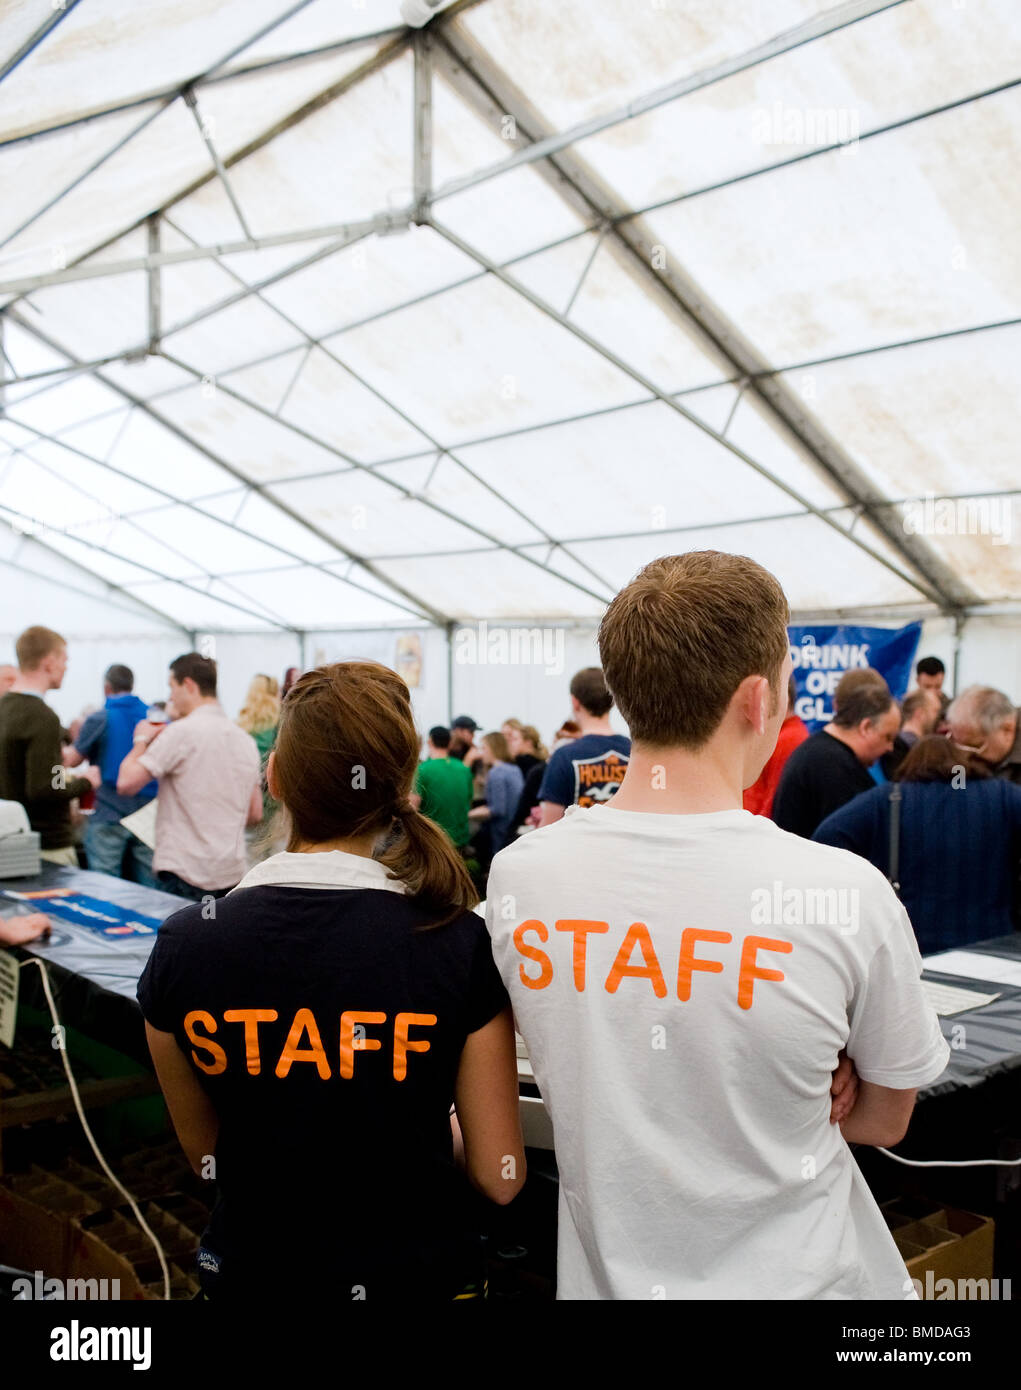 Staff working behind the bar at the Hoop Pub Beer Festival in Stock in Essex. - Stock Image